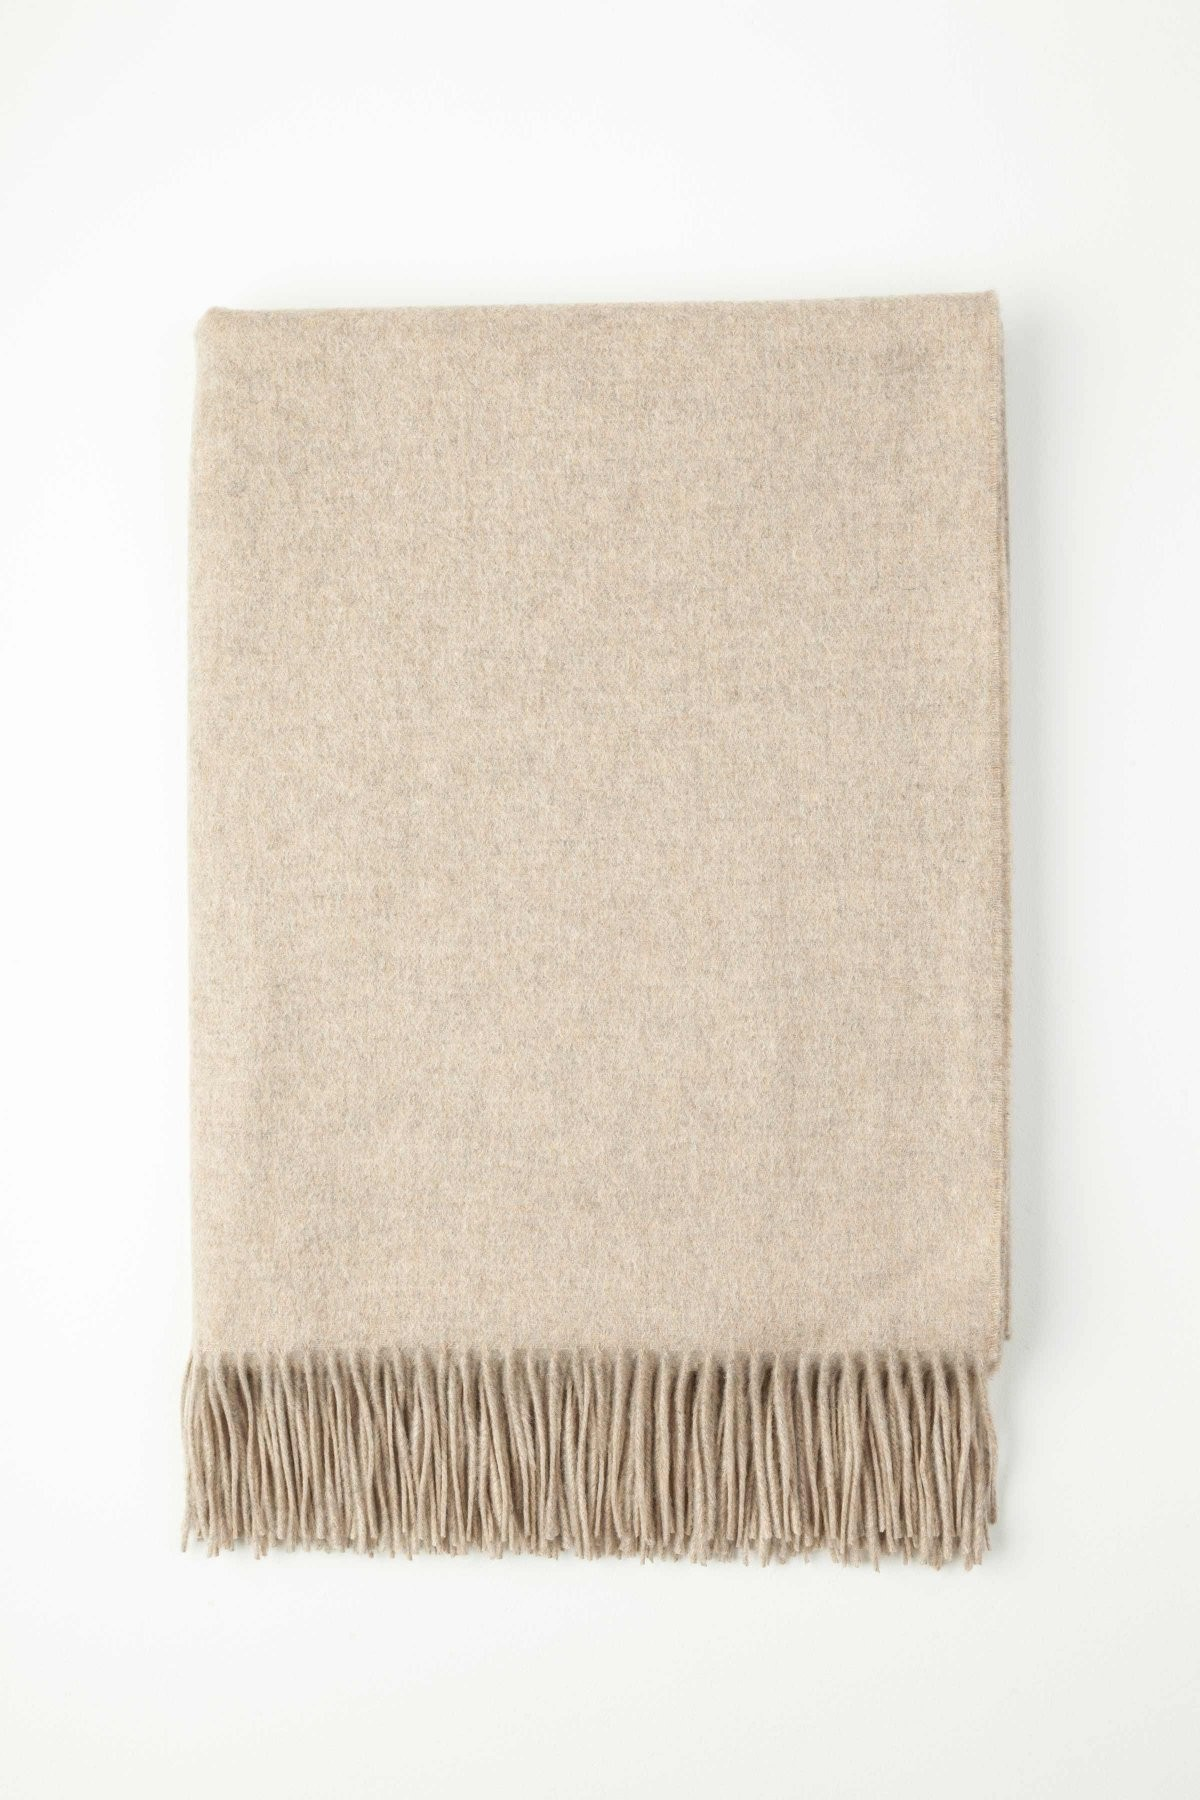 Johnston's of Elgin Plain Cashmere Throw - Hessian